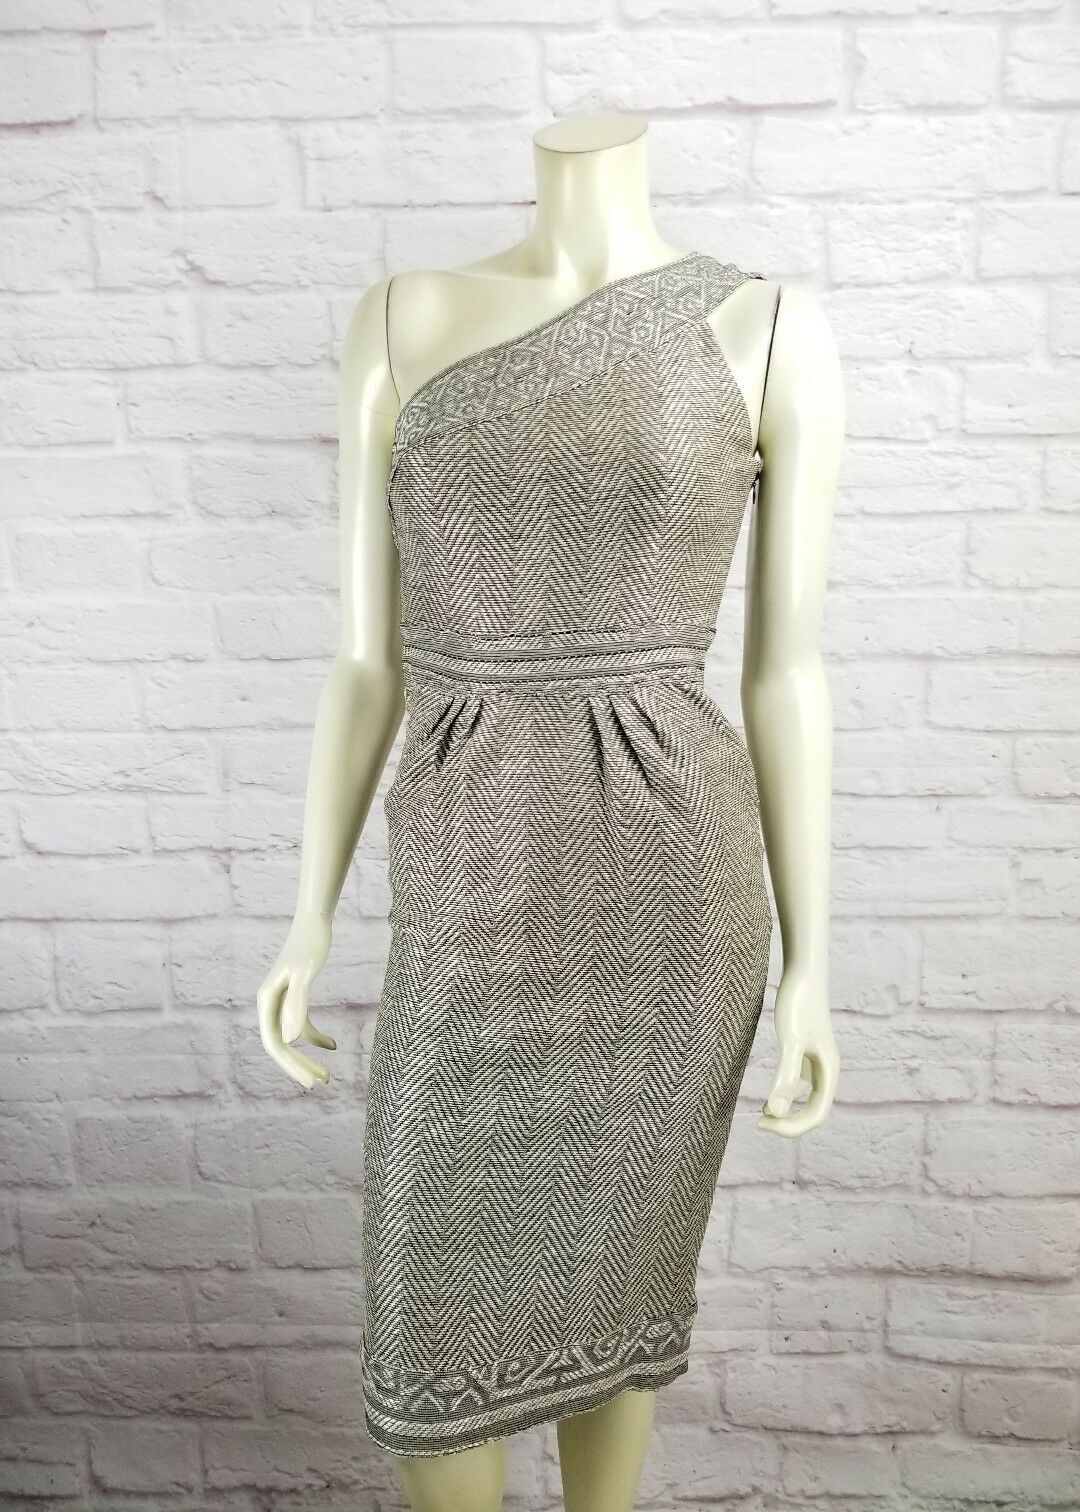 DVF Diane Von Furstenberg Furstenberg Furstenberg Sirabe One Shoulder Textured Dress Size 2 Nwt  595 1b6792